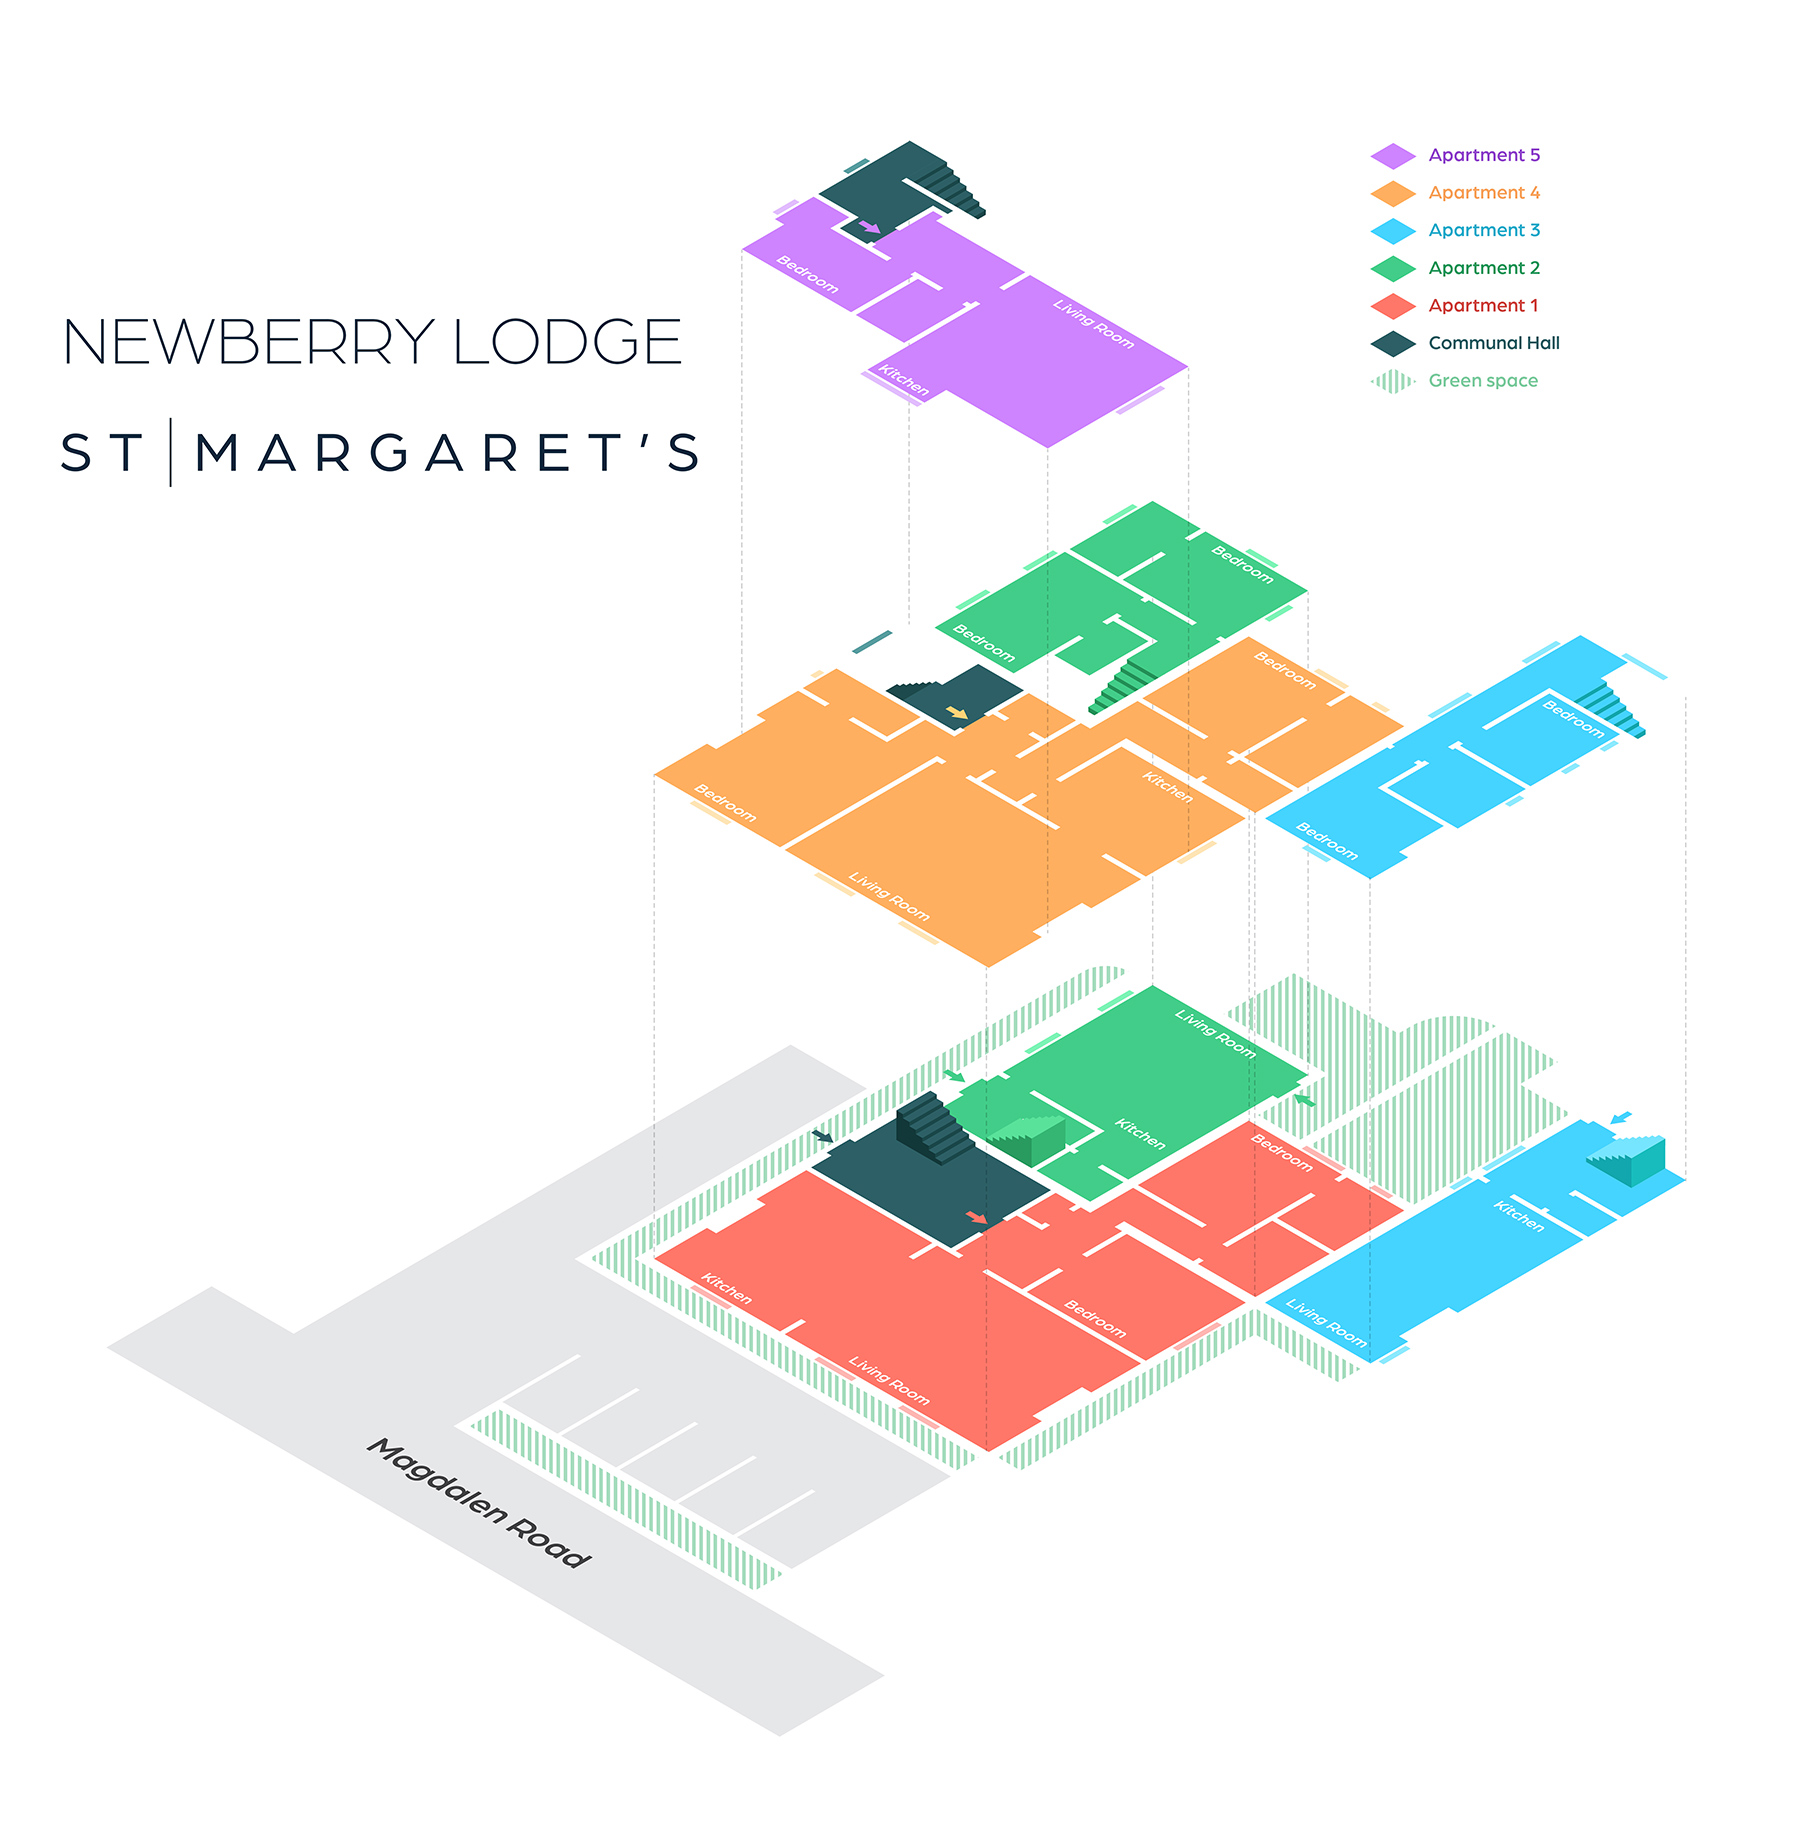 Newberry Lodge